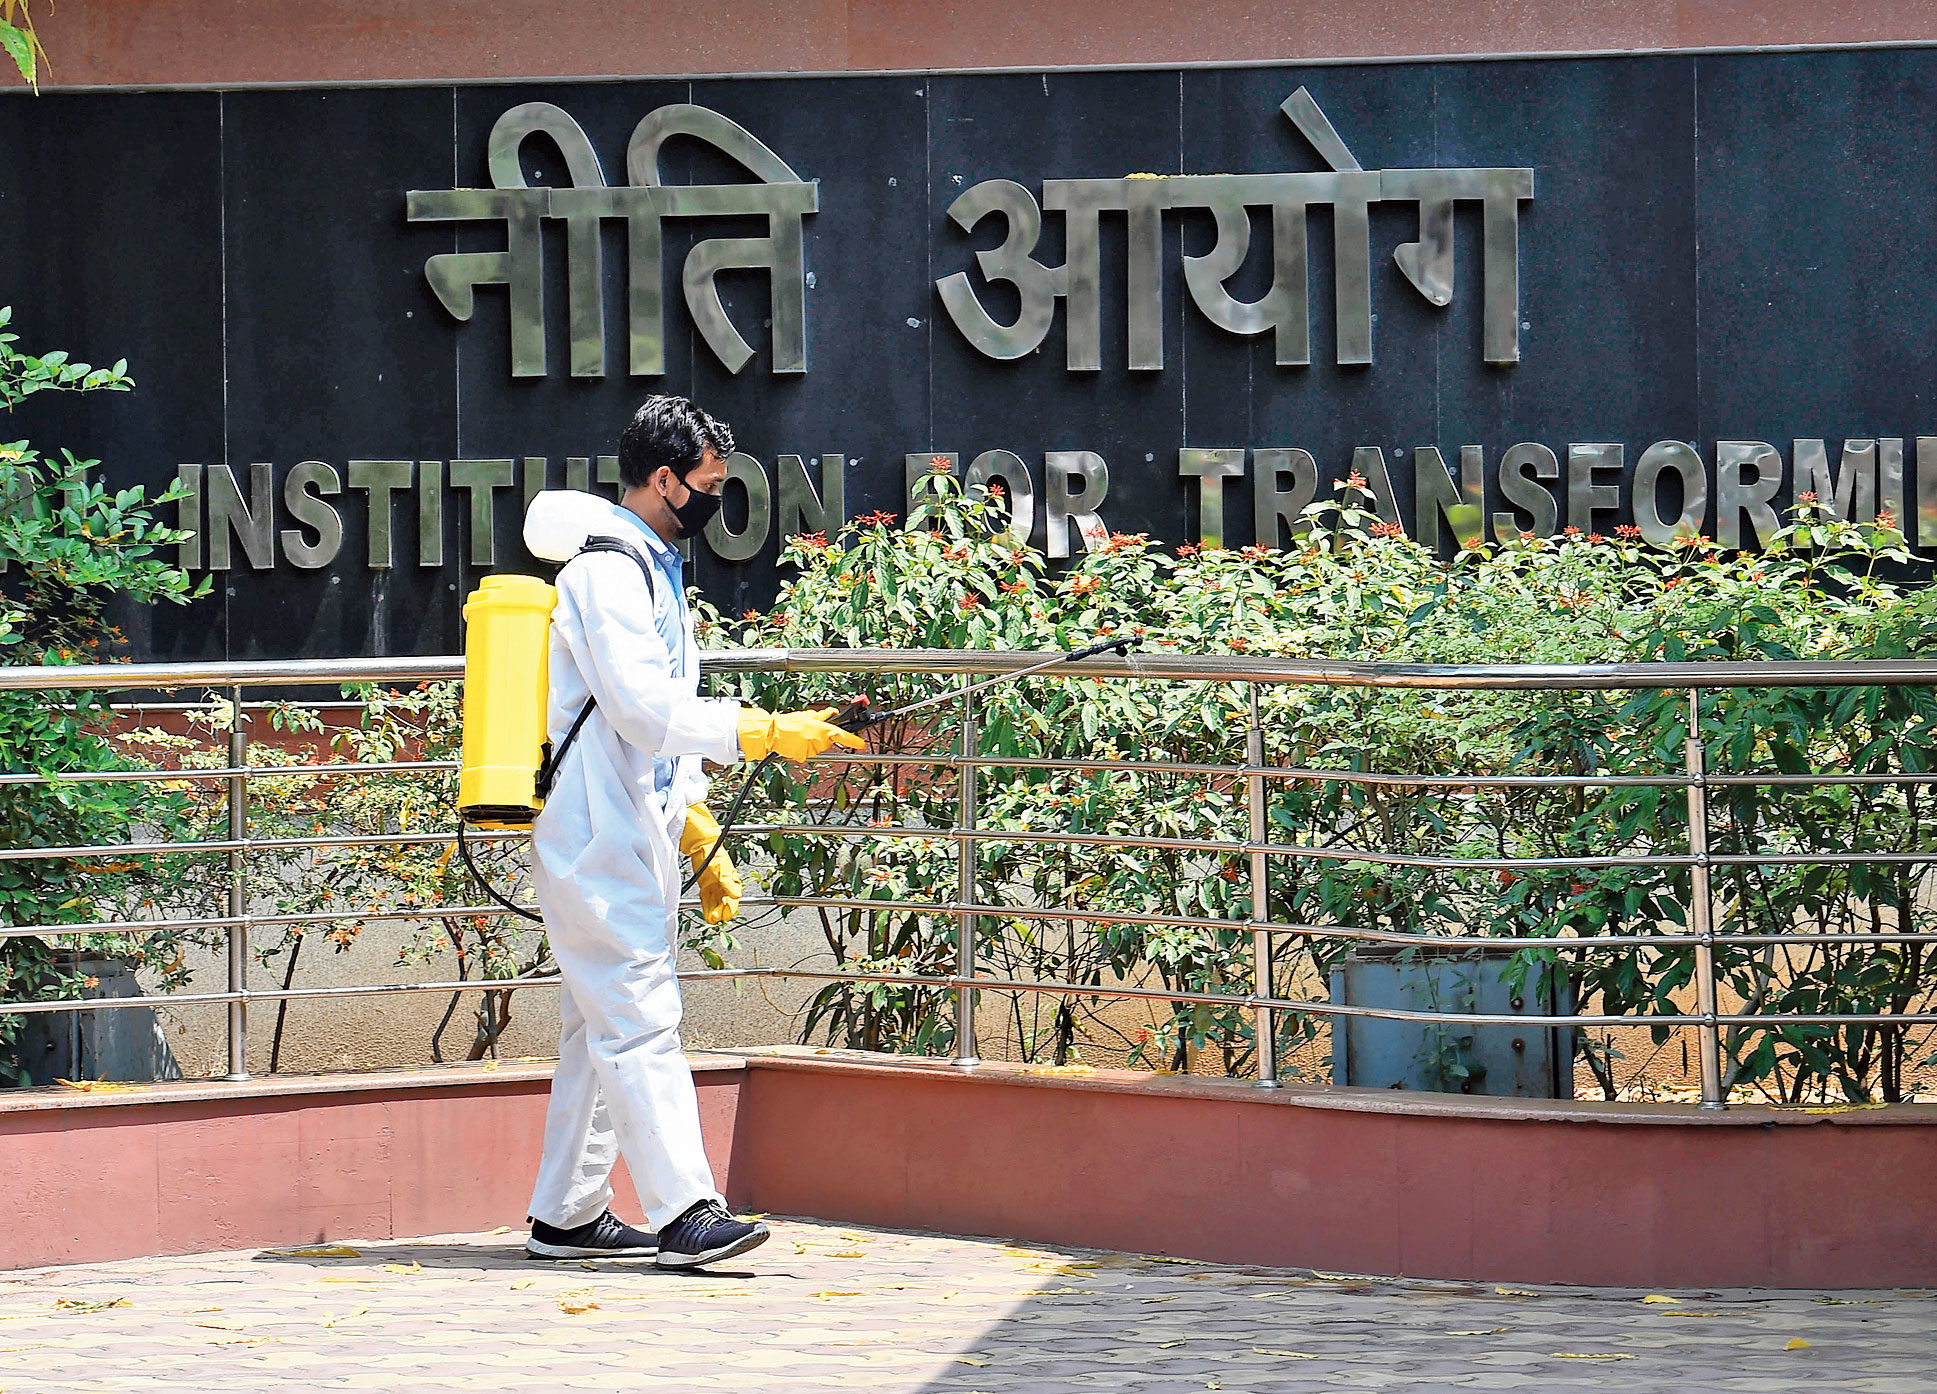 The headquarters of Niti Aayog, the policy think tank of the Narendra Modi government, were sealed on Tuesday morning after a director-level officer tested positive for Covid-19. Located on Parliament Street in the heart of the national capital, the sealing of the premises began early in the day.